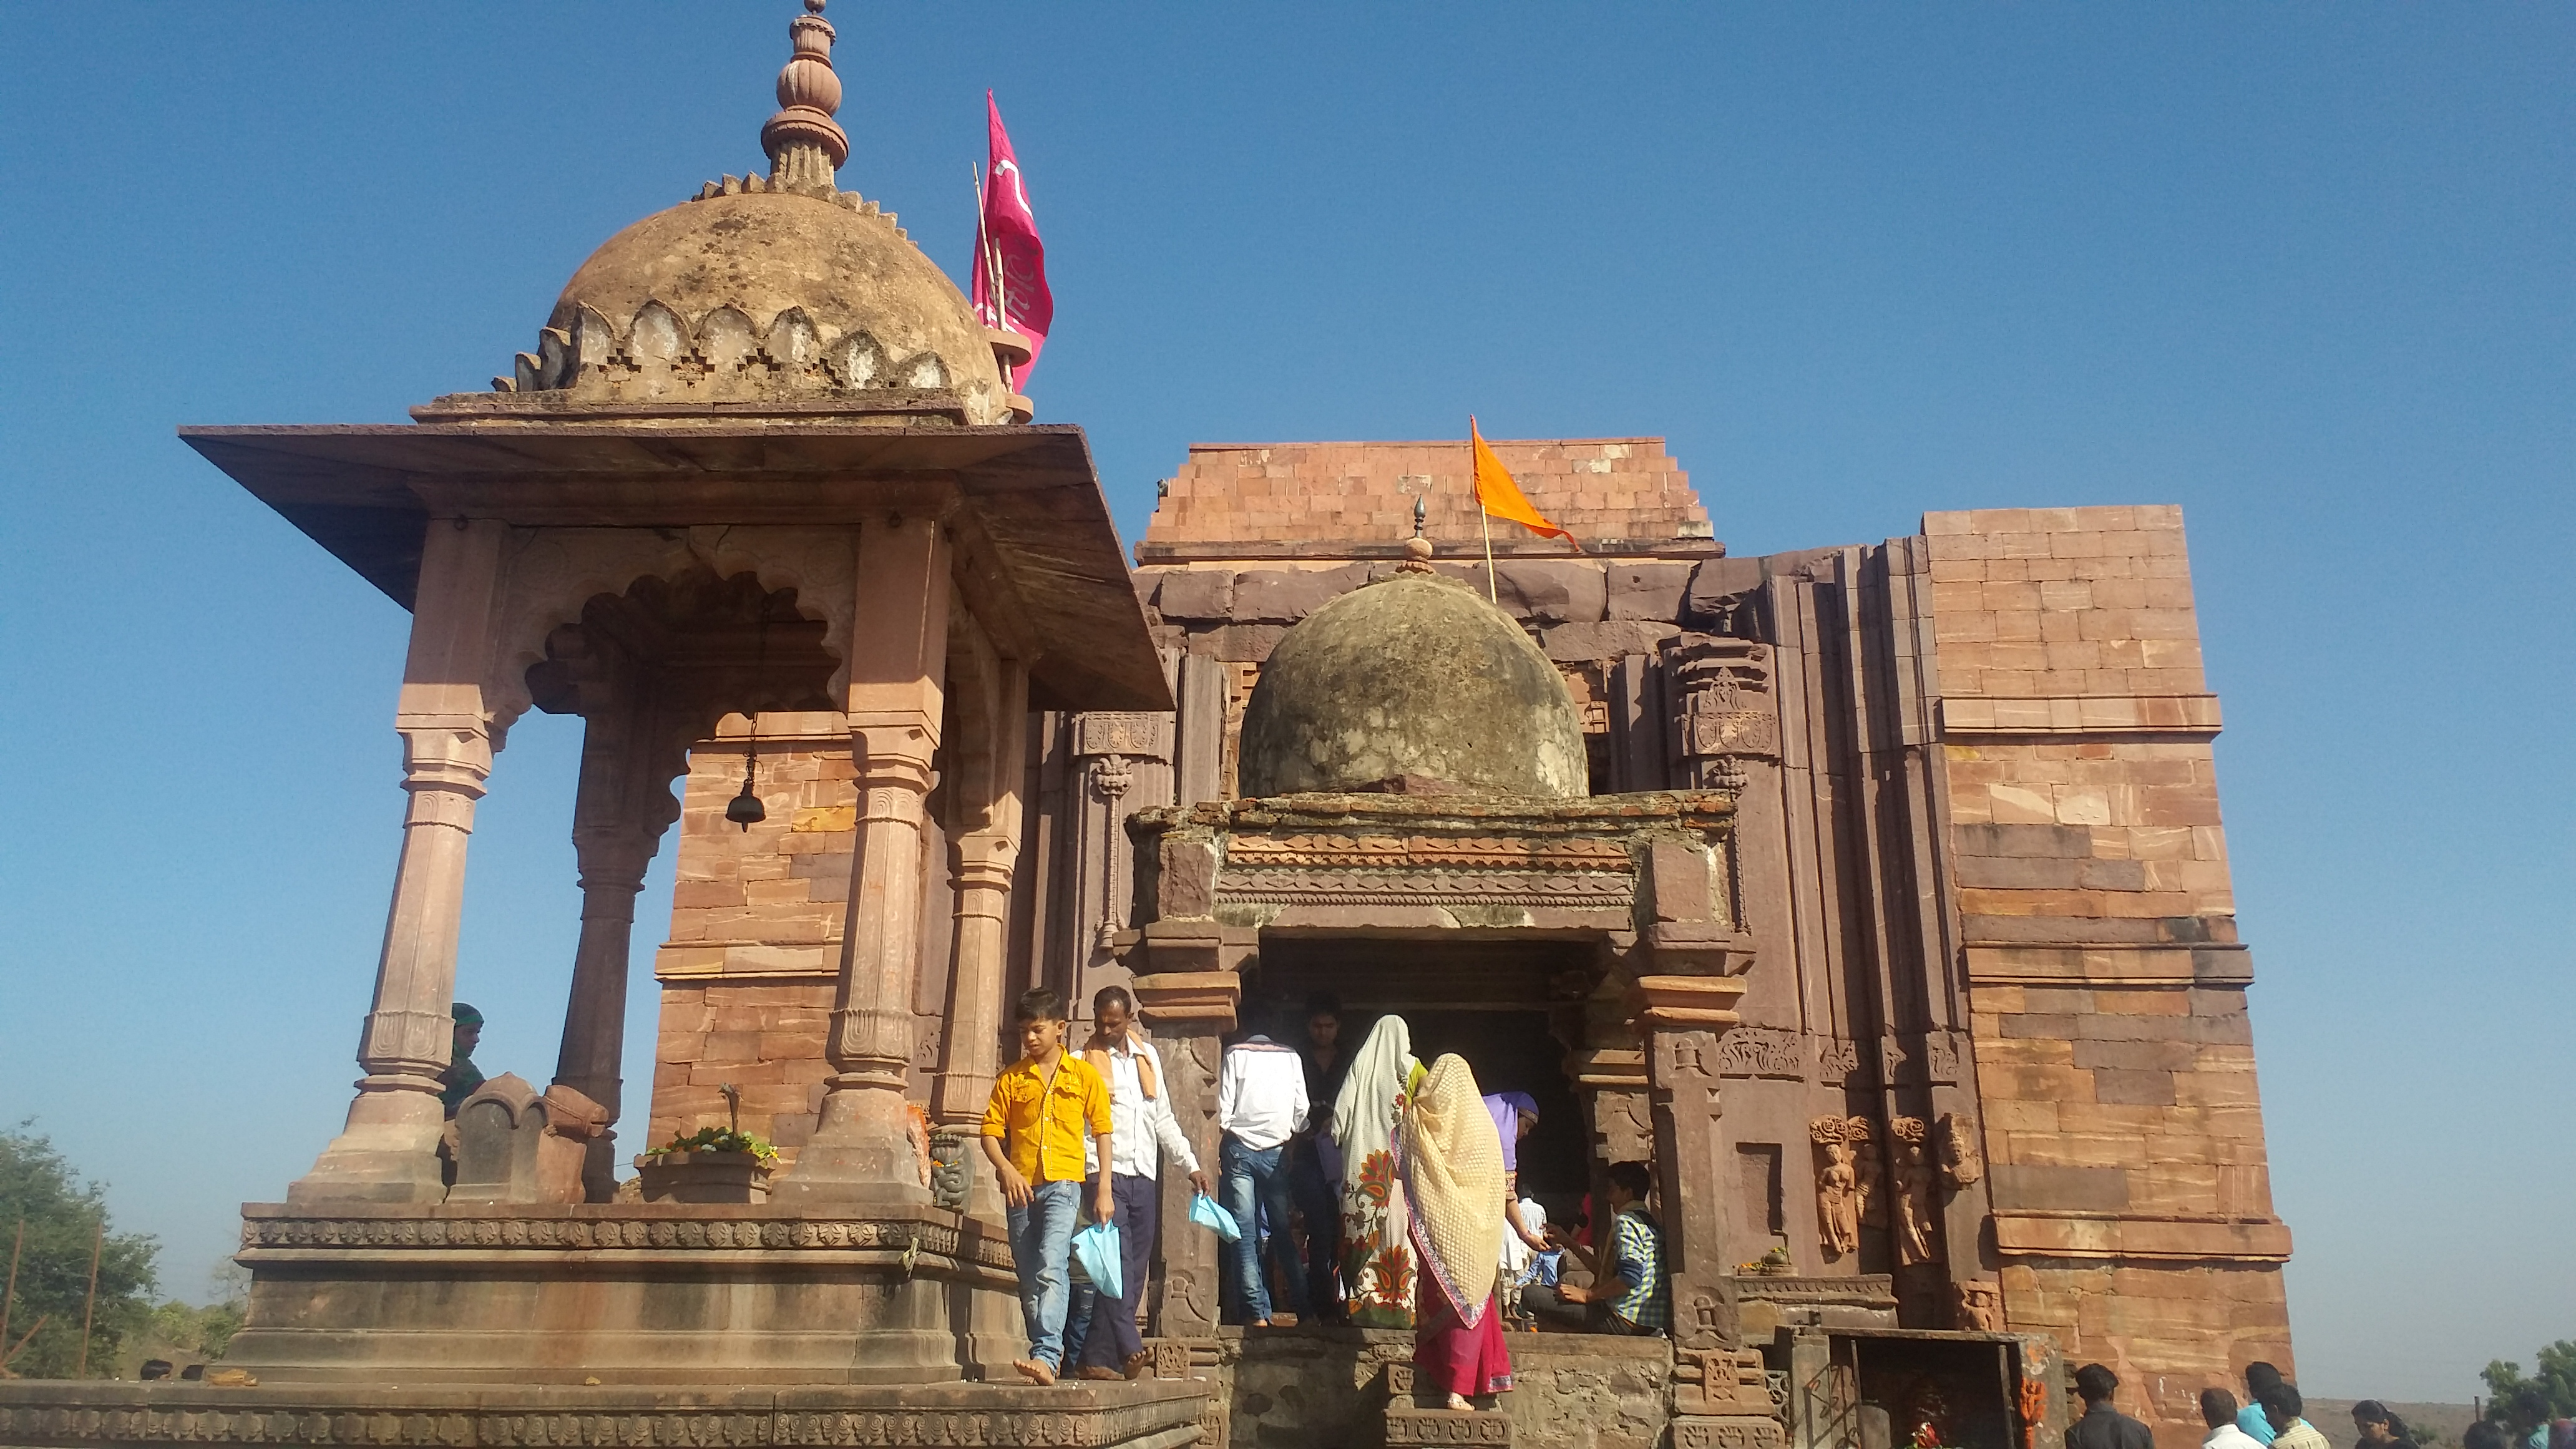 Sub-temples in front